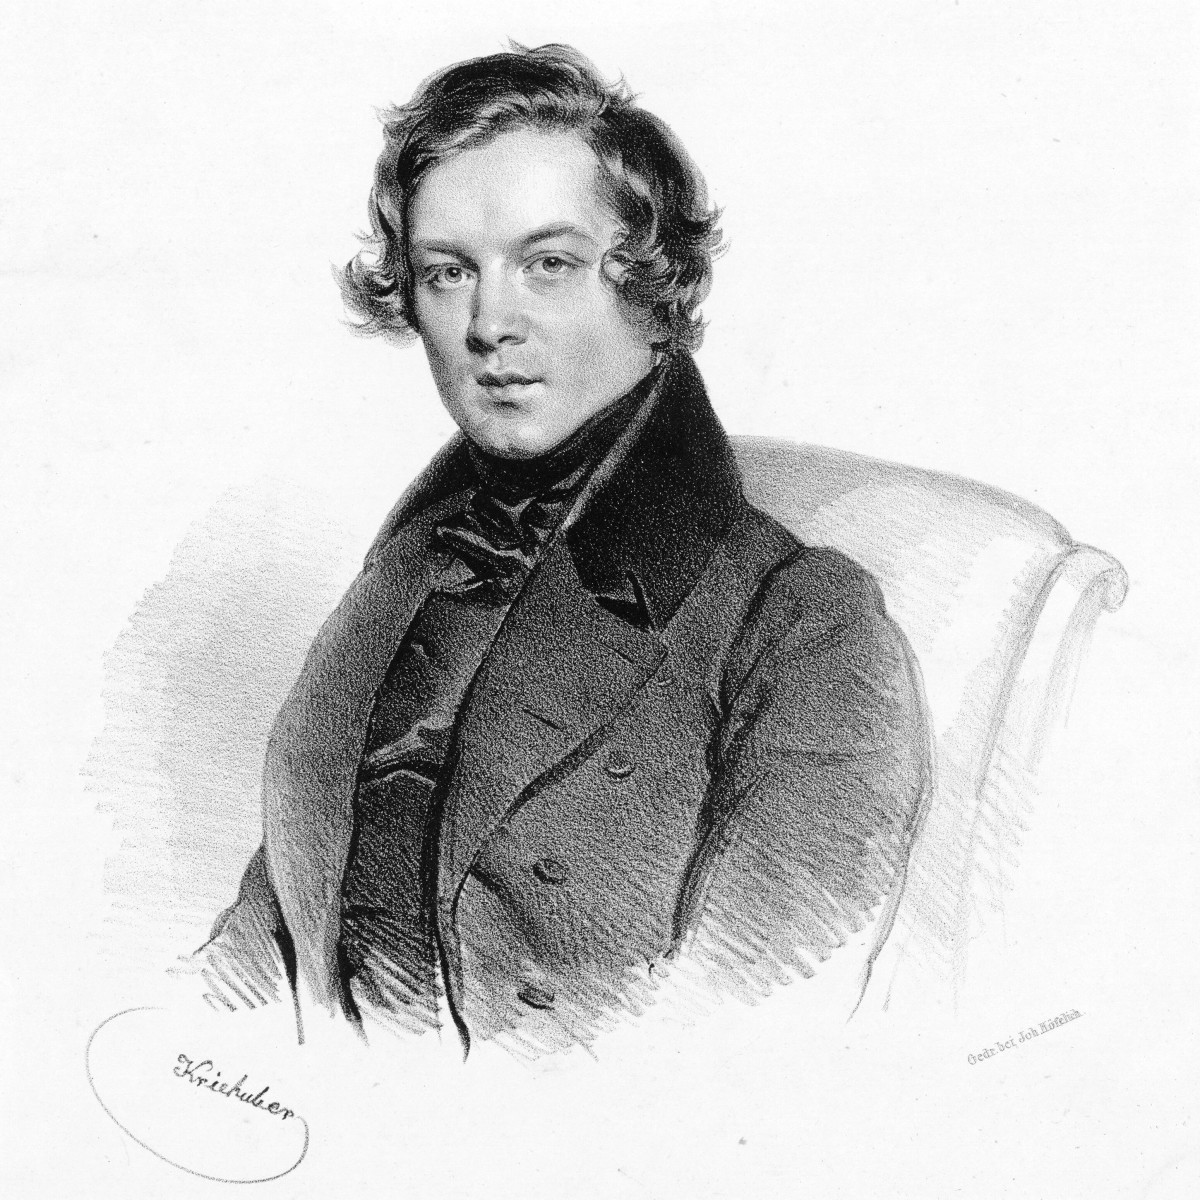 Robert Schumann at the age of 29